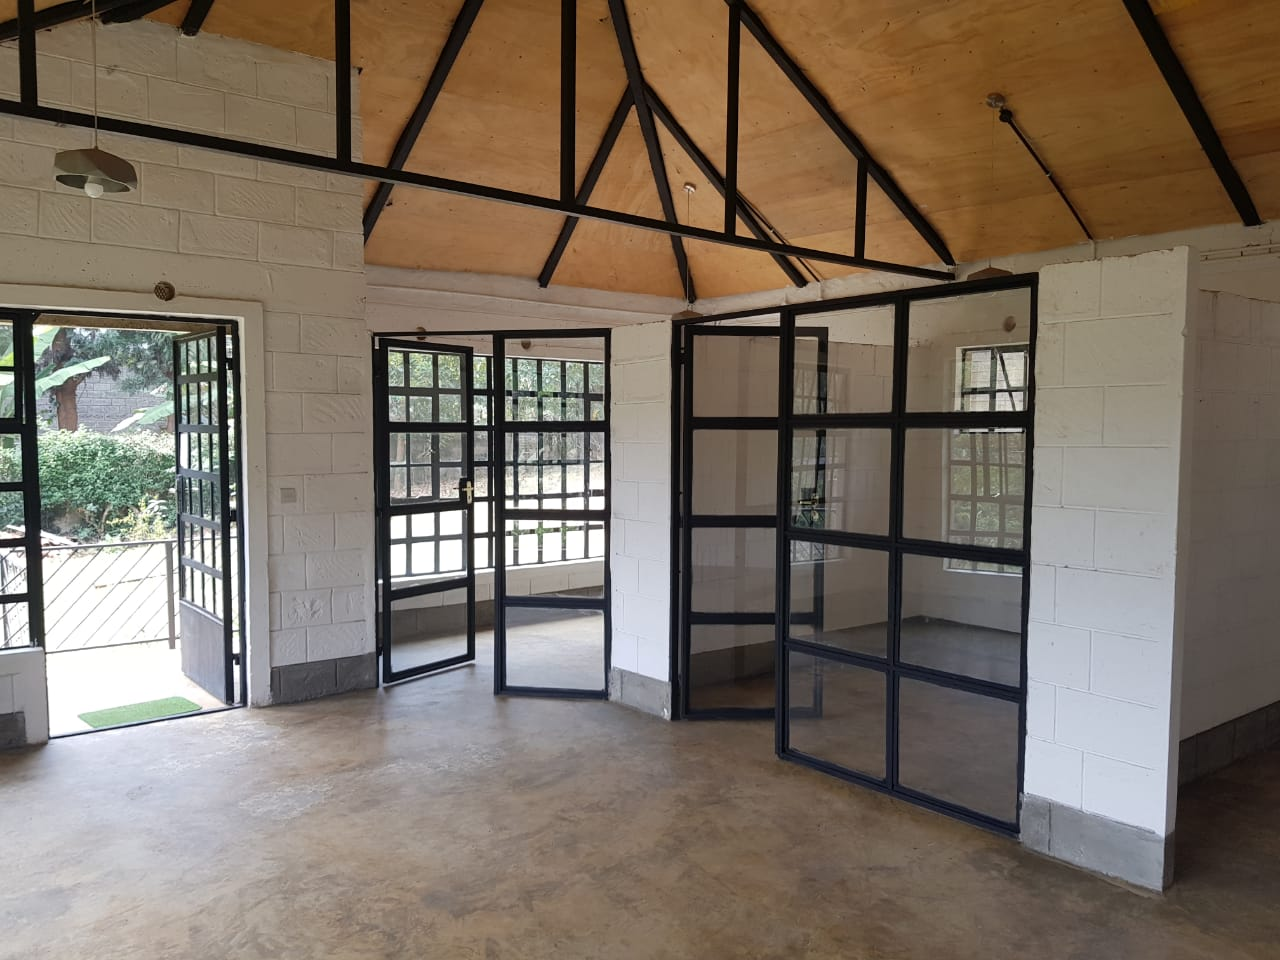 Office Space Available To Let Own Compound in Kileleshwa, Nairobi